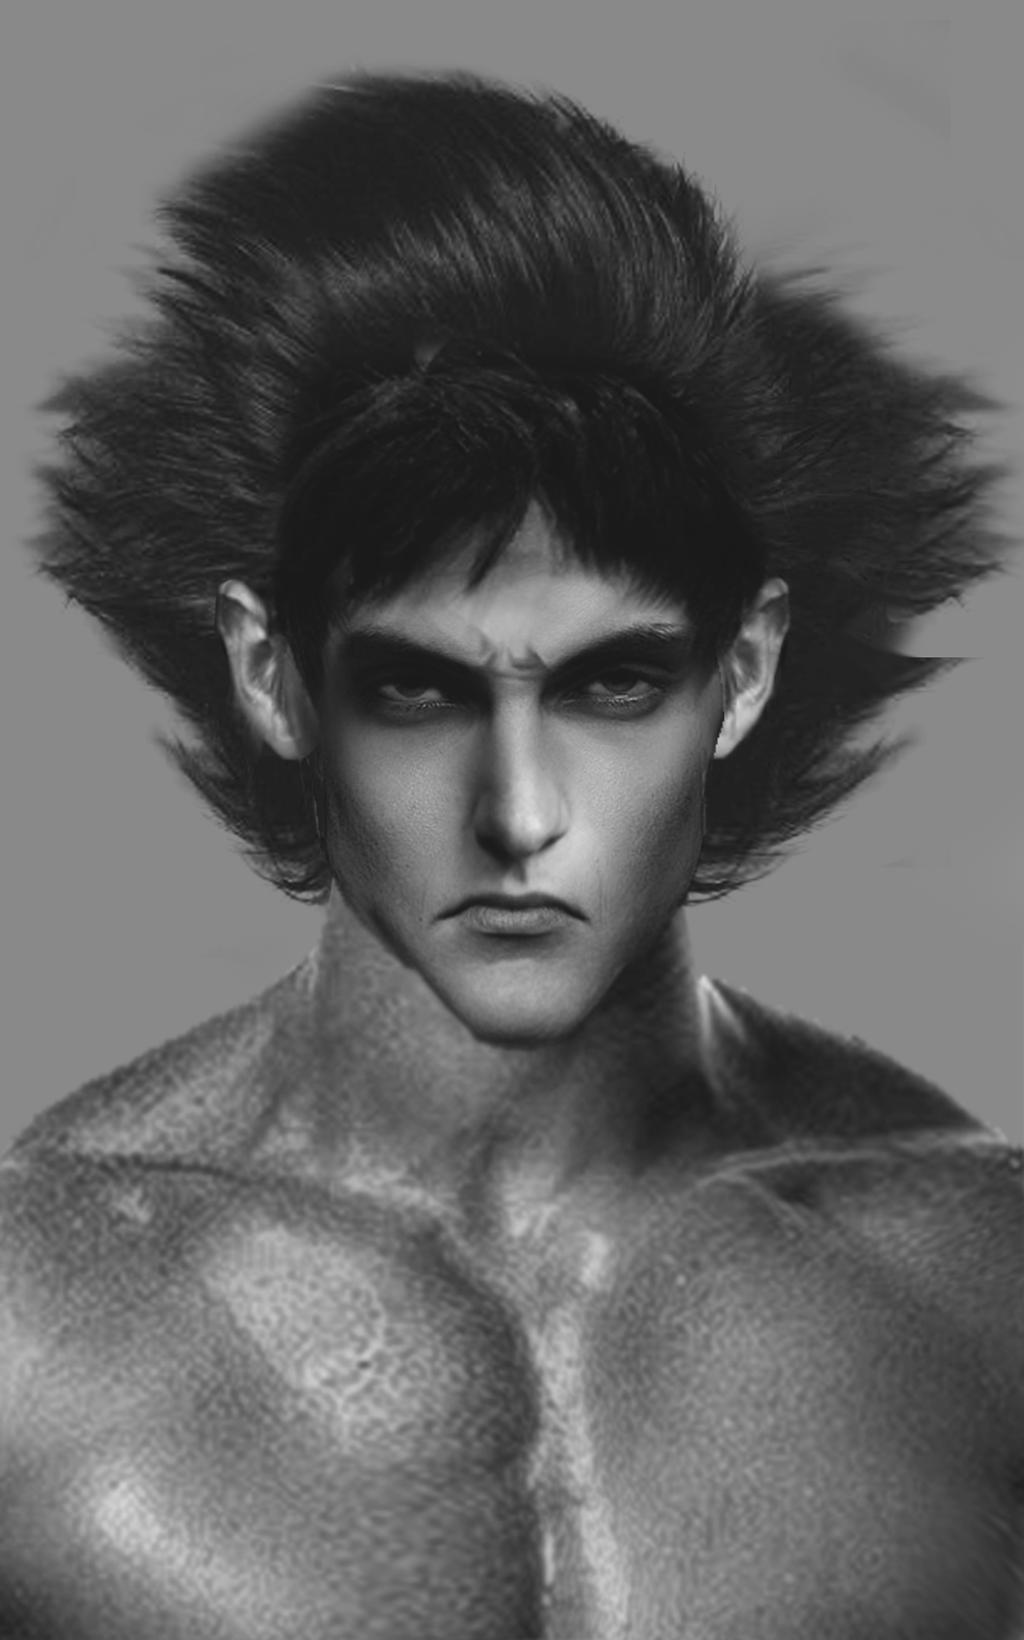 Goku real life by Shibuz4 on DeviantArt